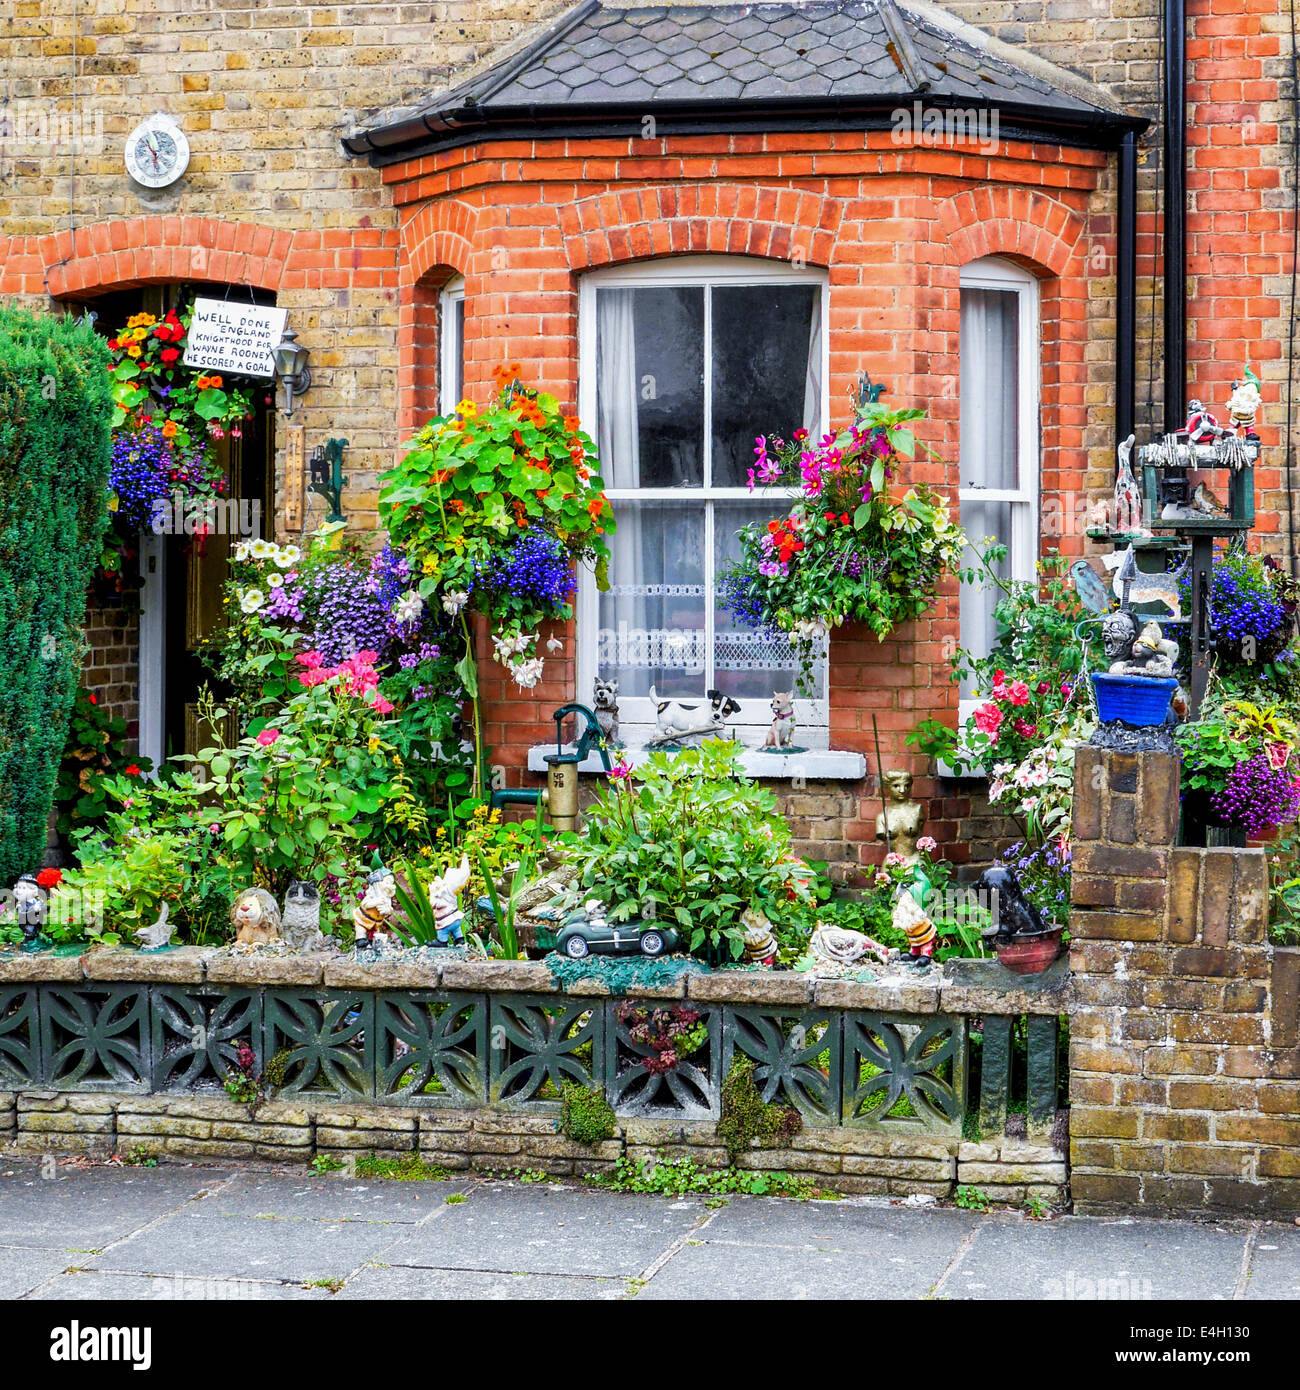 Unusual fun quirky front garden with amusing ornaments for Quirky ornaments uk